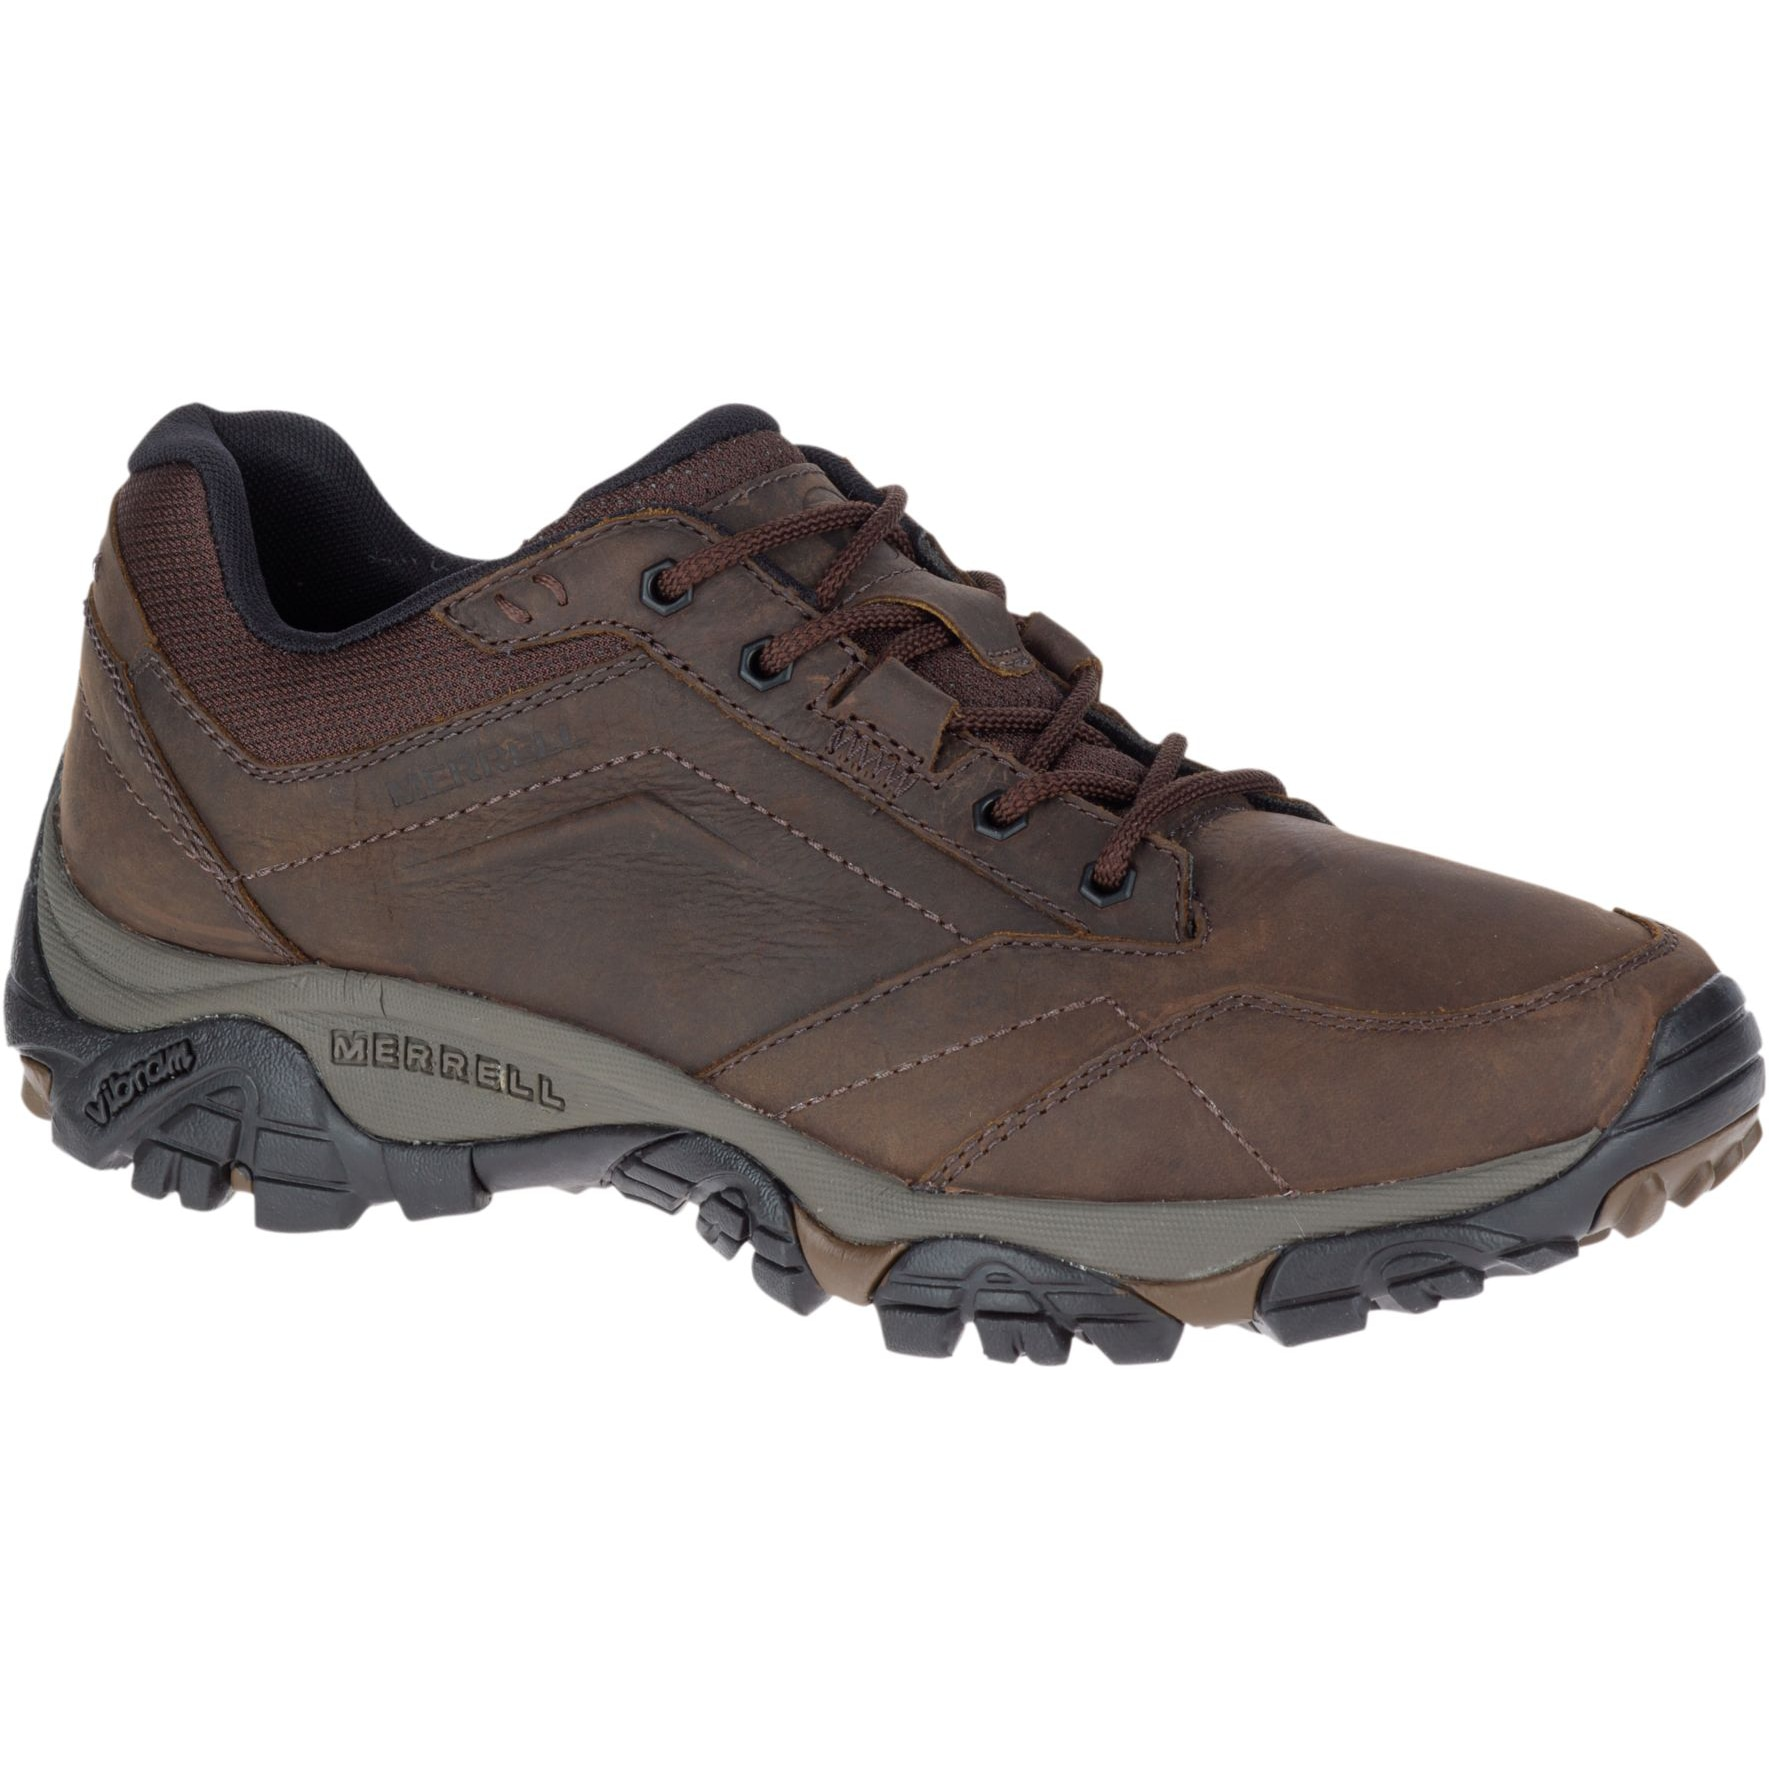 MOAB ADVENTURE LACE WIDE